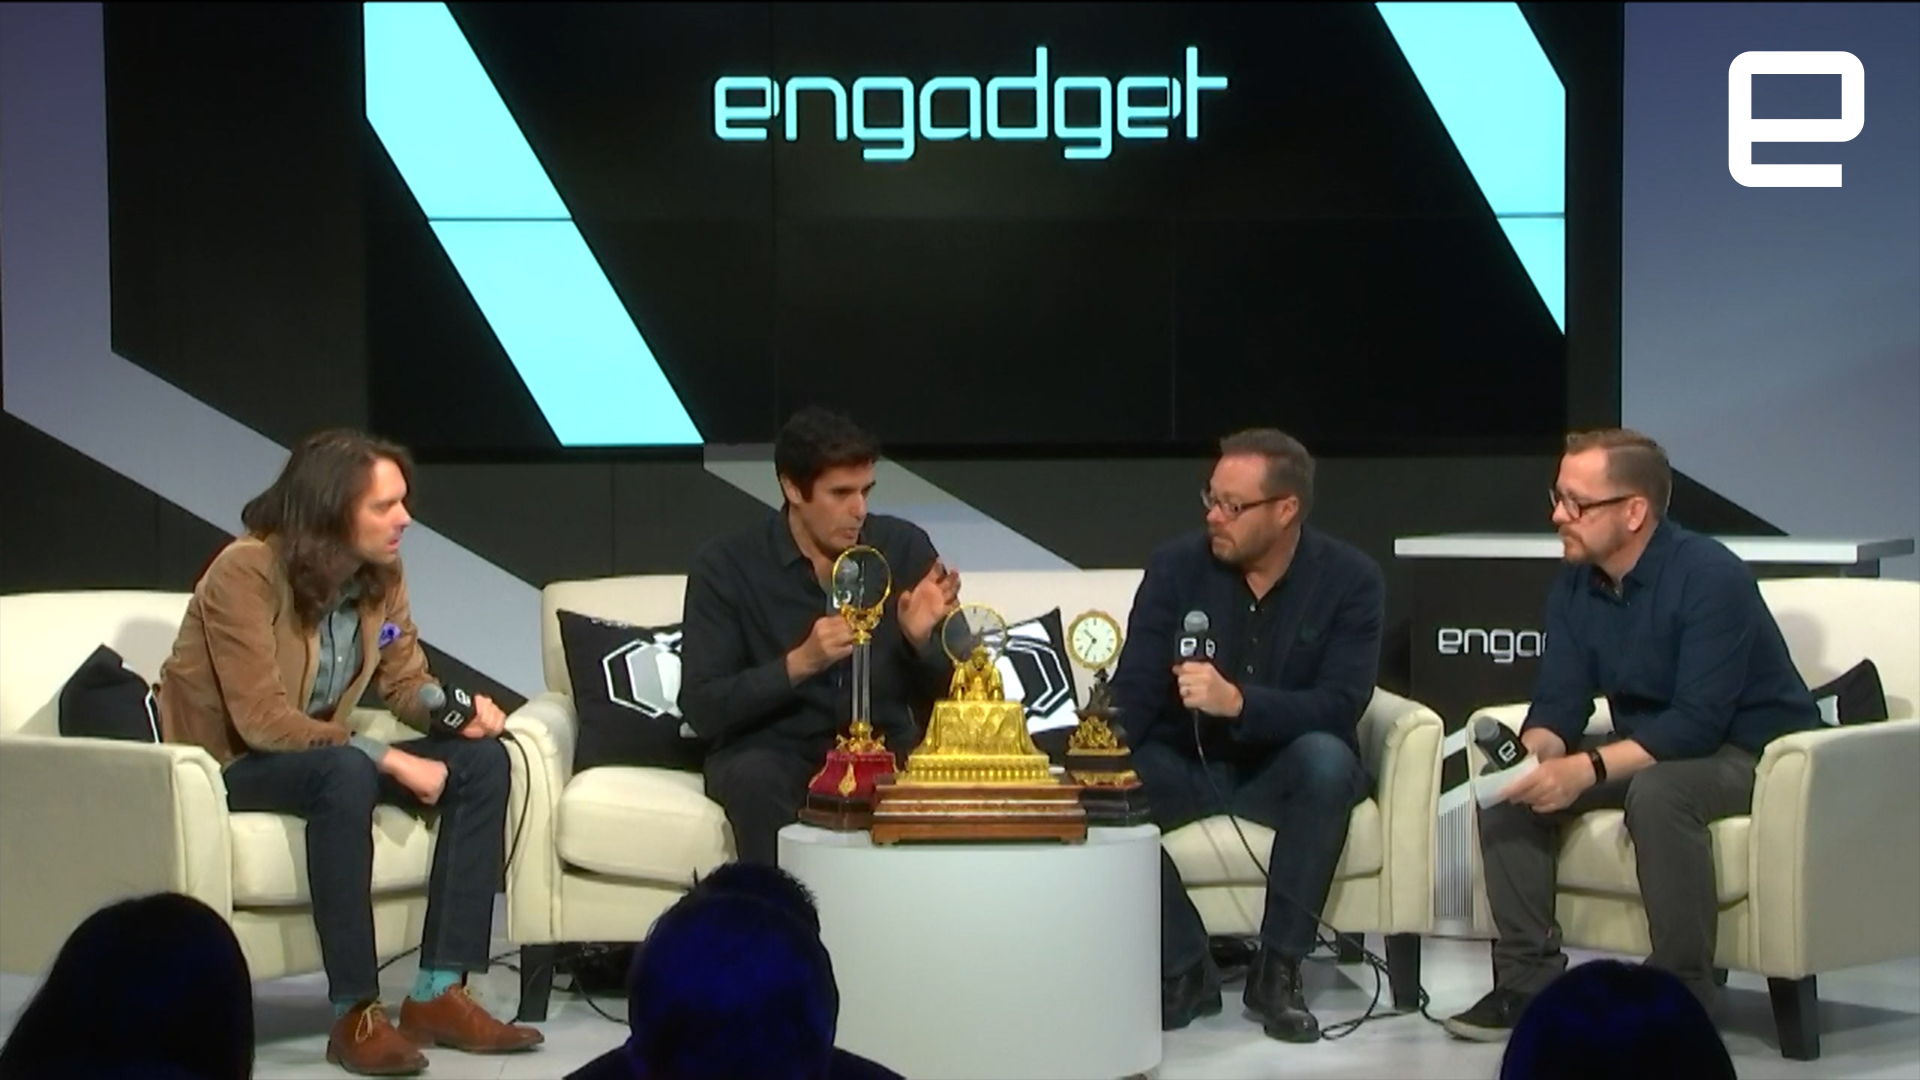 David Copperfield: 'I come to CES to get inspired'